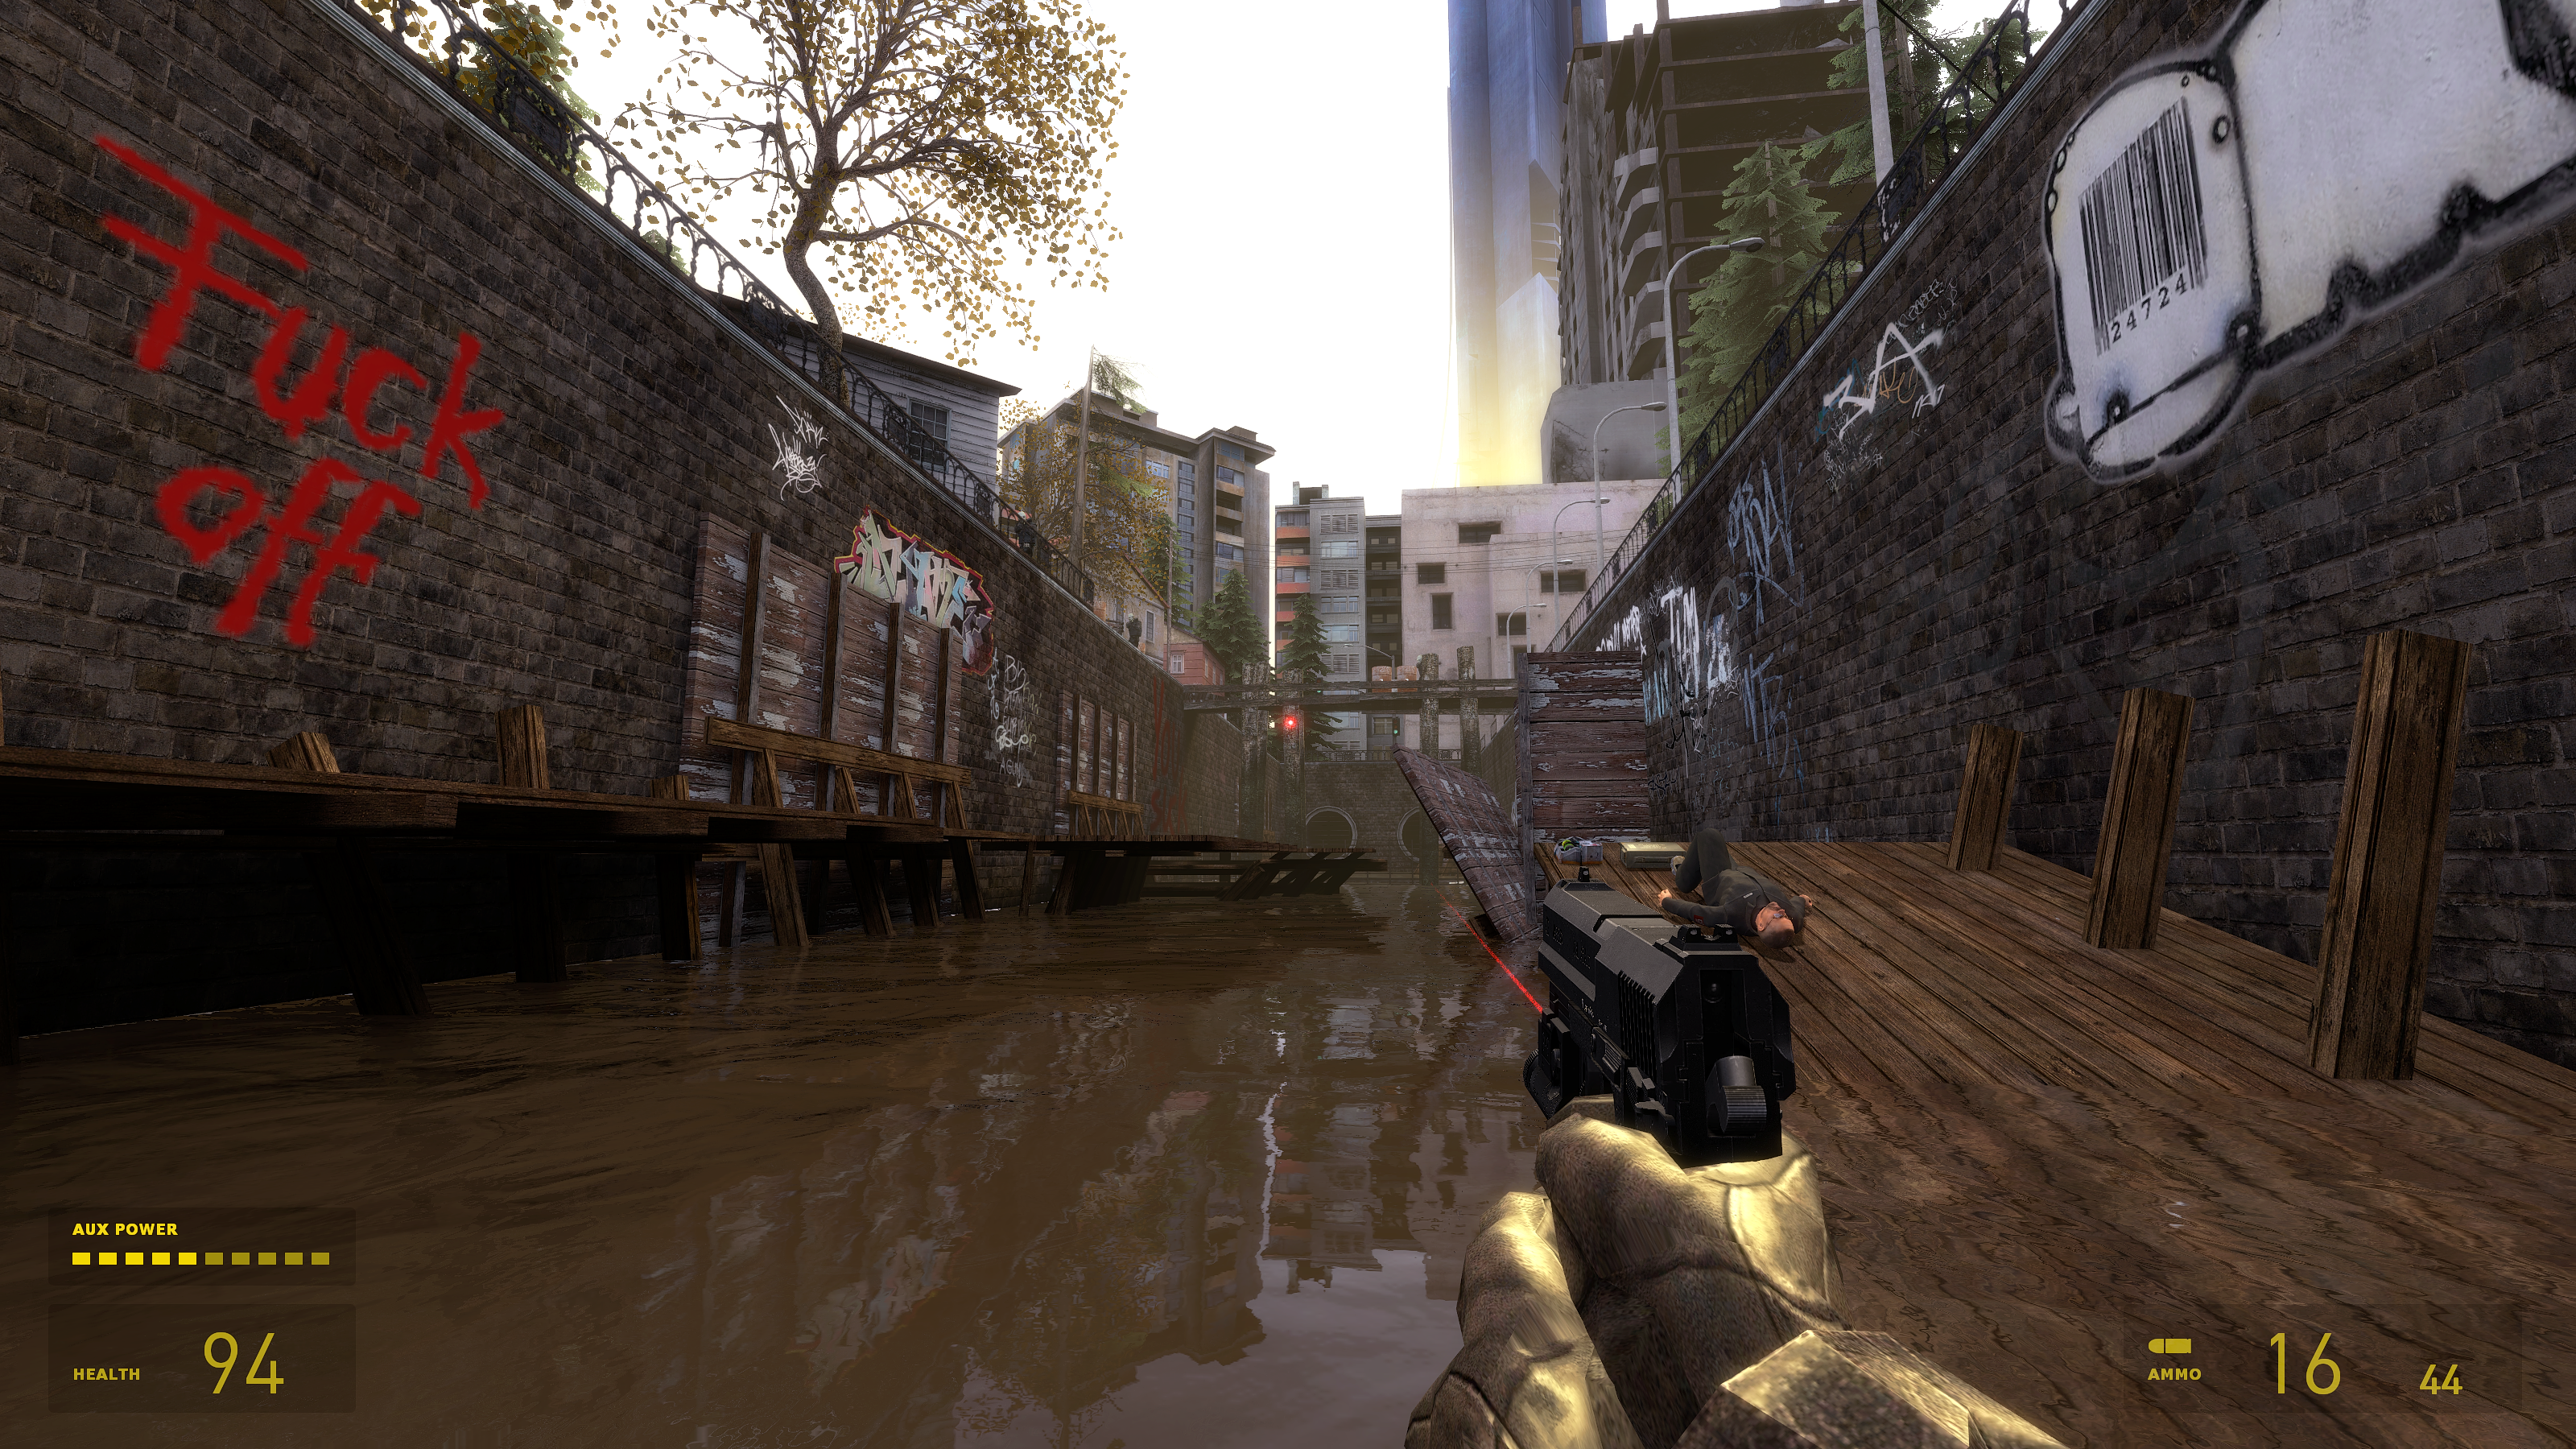 With latest graphics mod Half-Life 2 looks better than most current-gen games - page 2 - System Wars - GameSpot